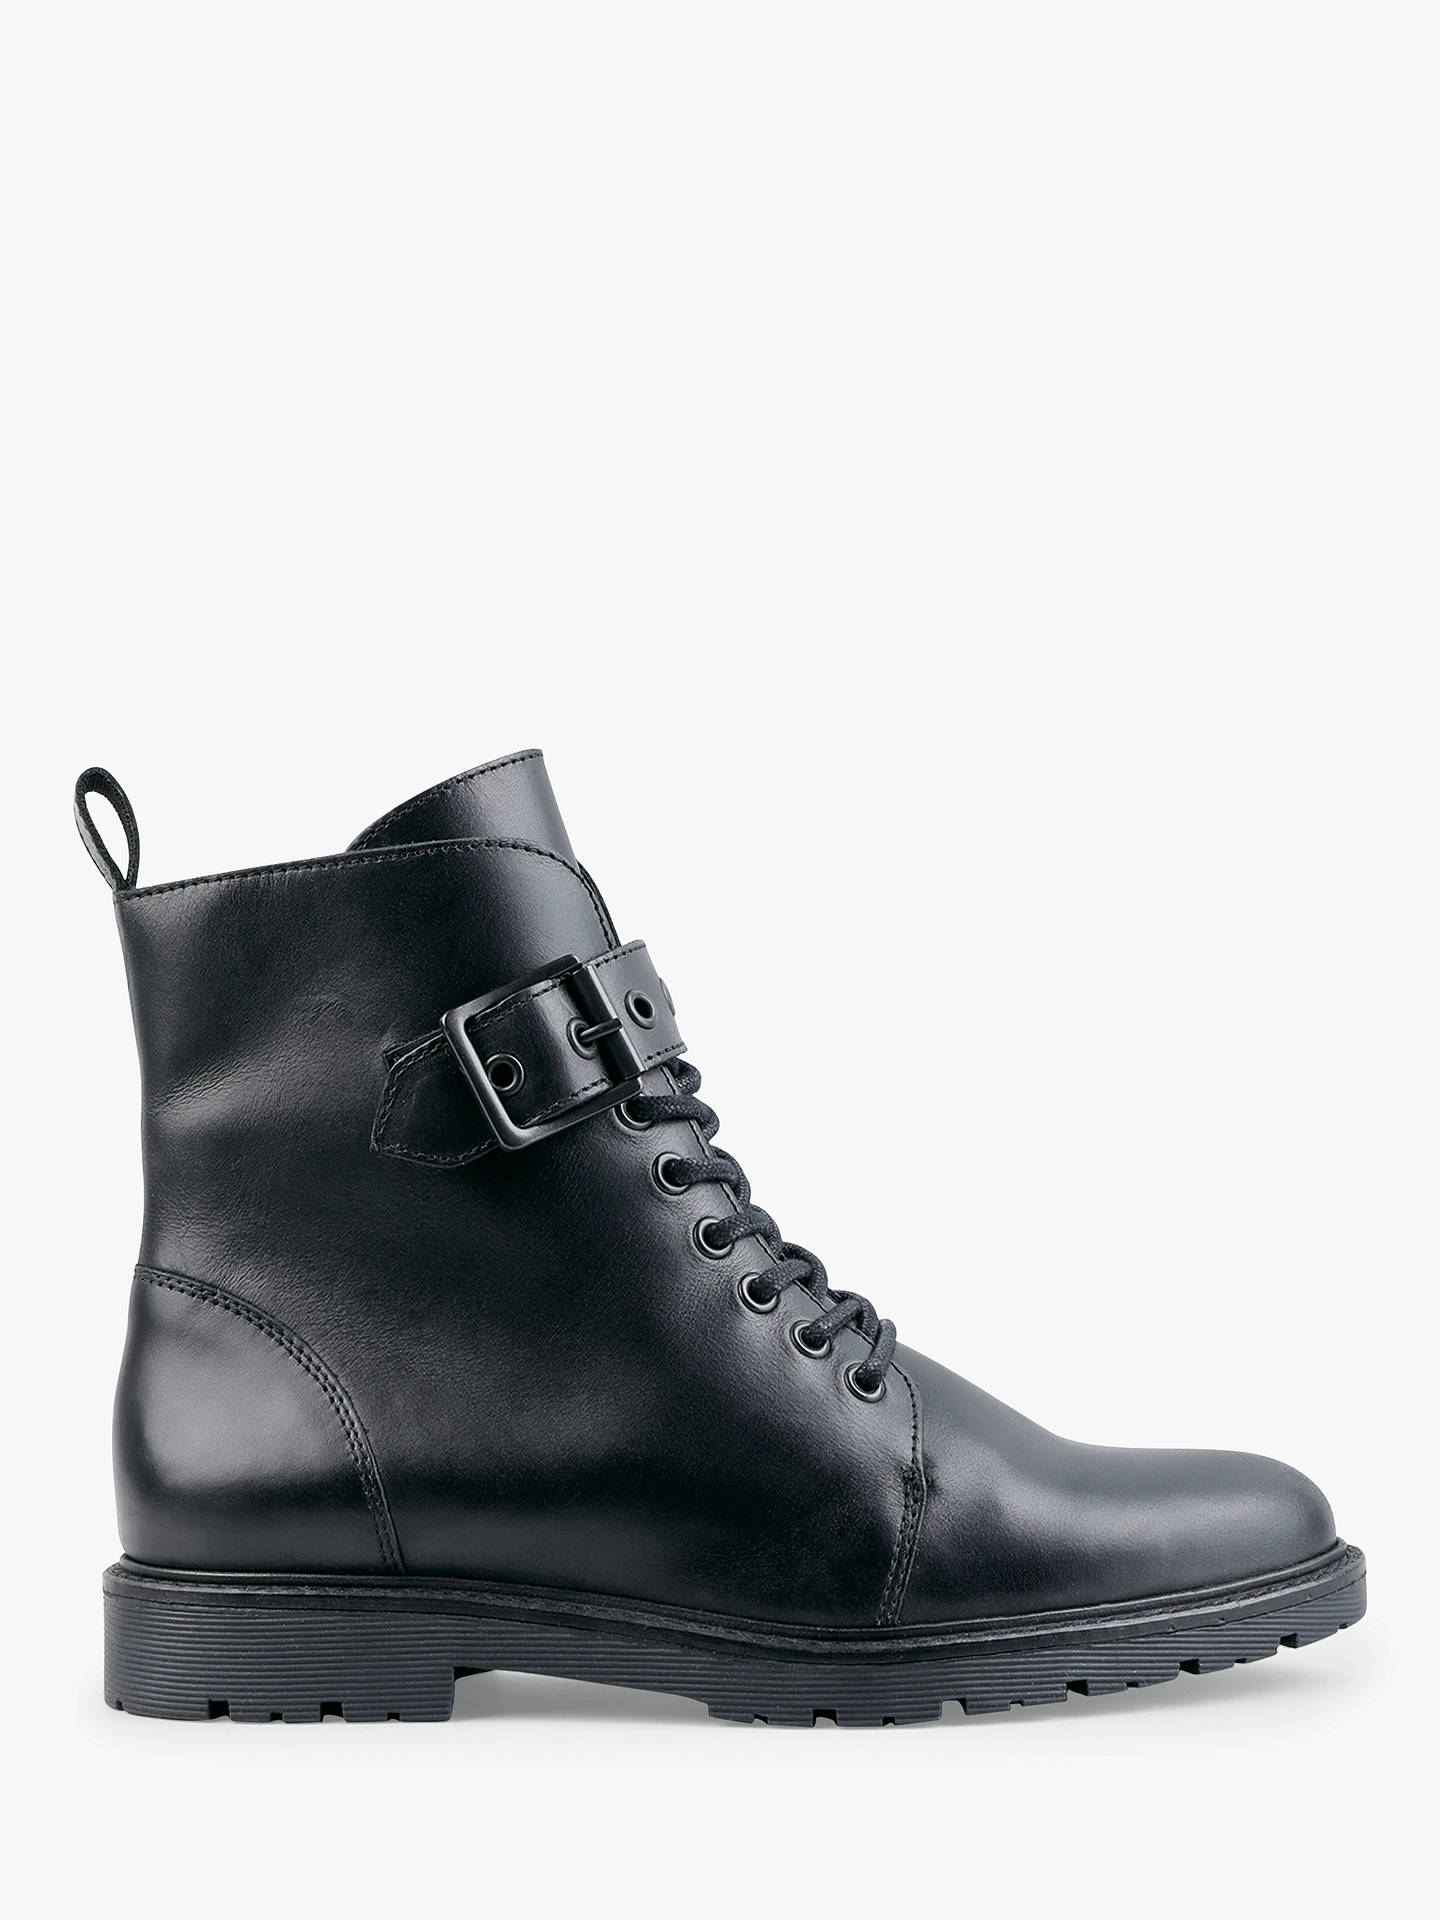 Hush Buxton Leather Biker Ankle Boots, Black by Hush